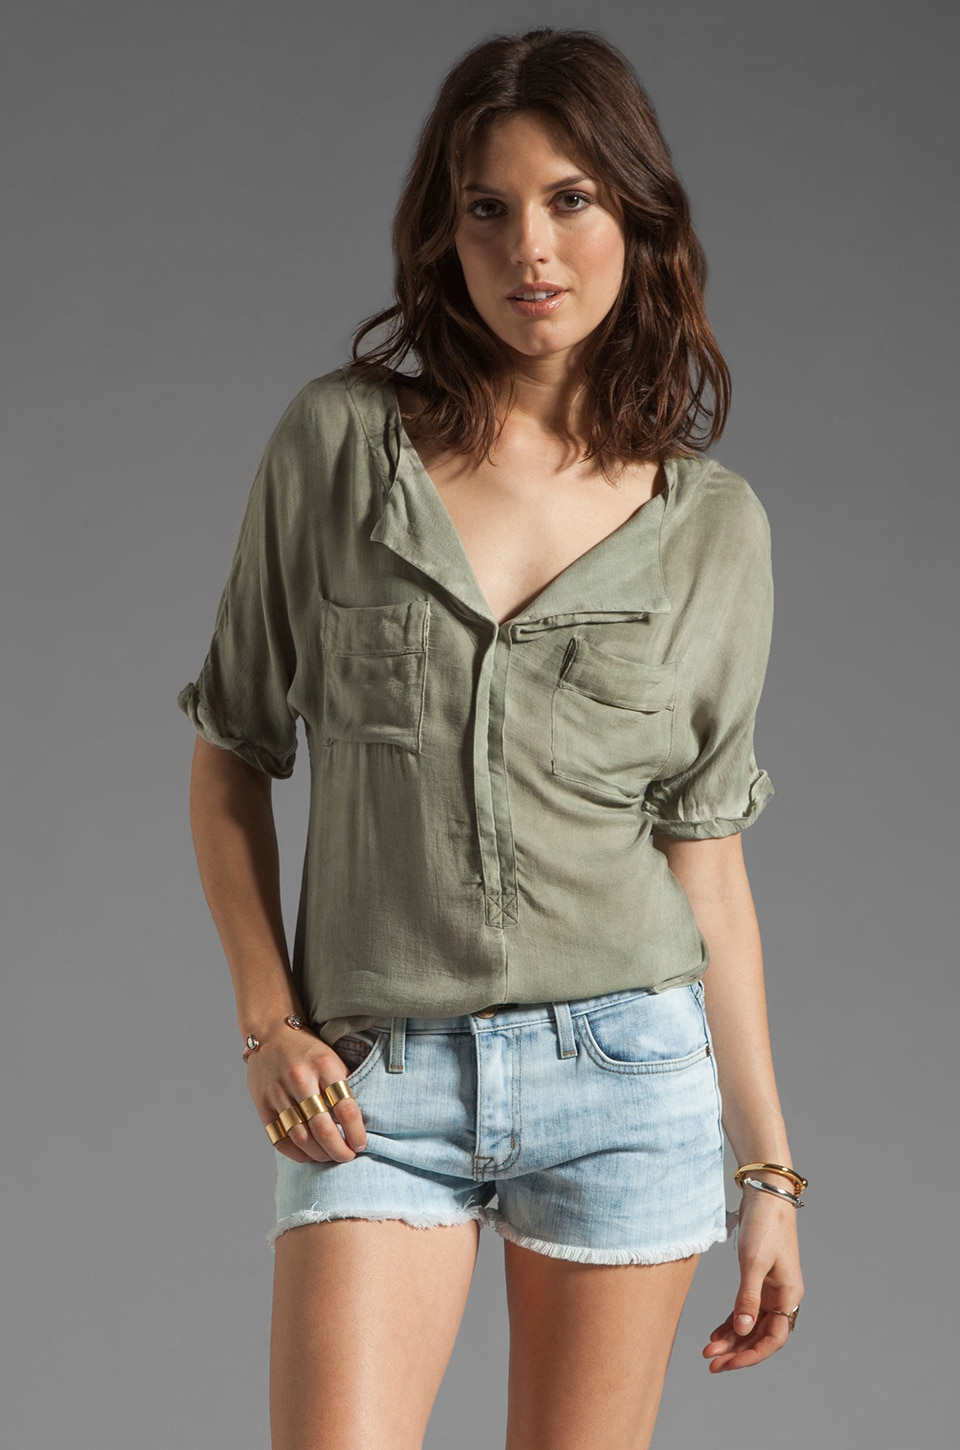 Free People American Pie Top in Camo